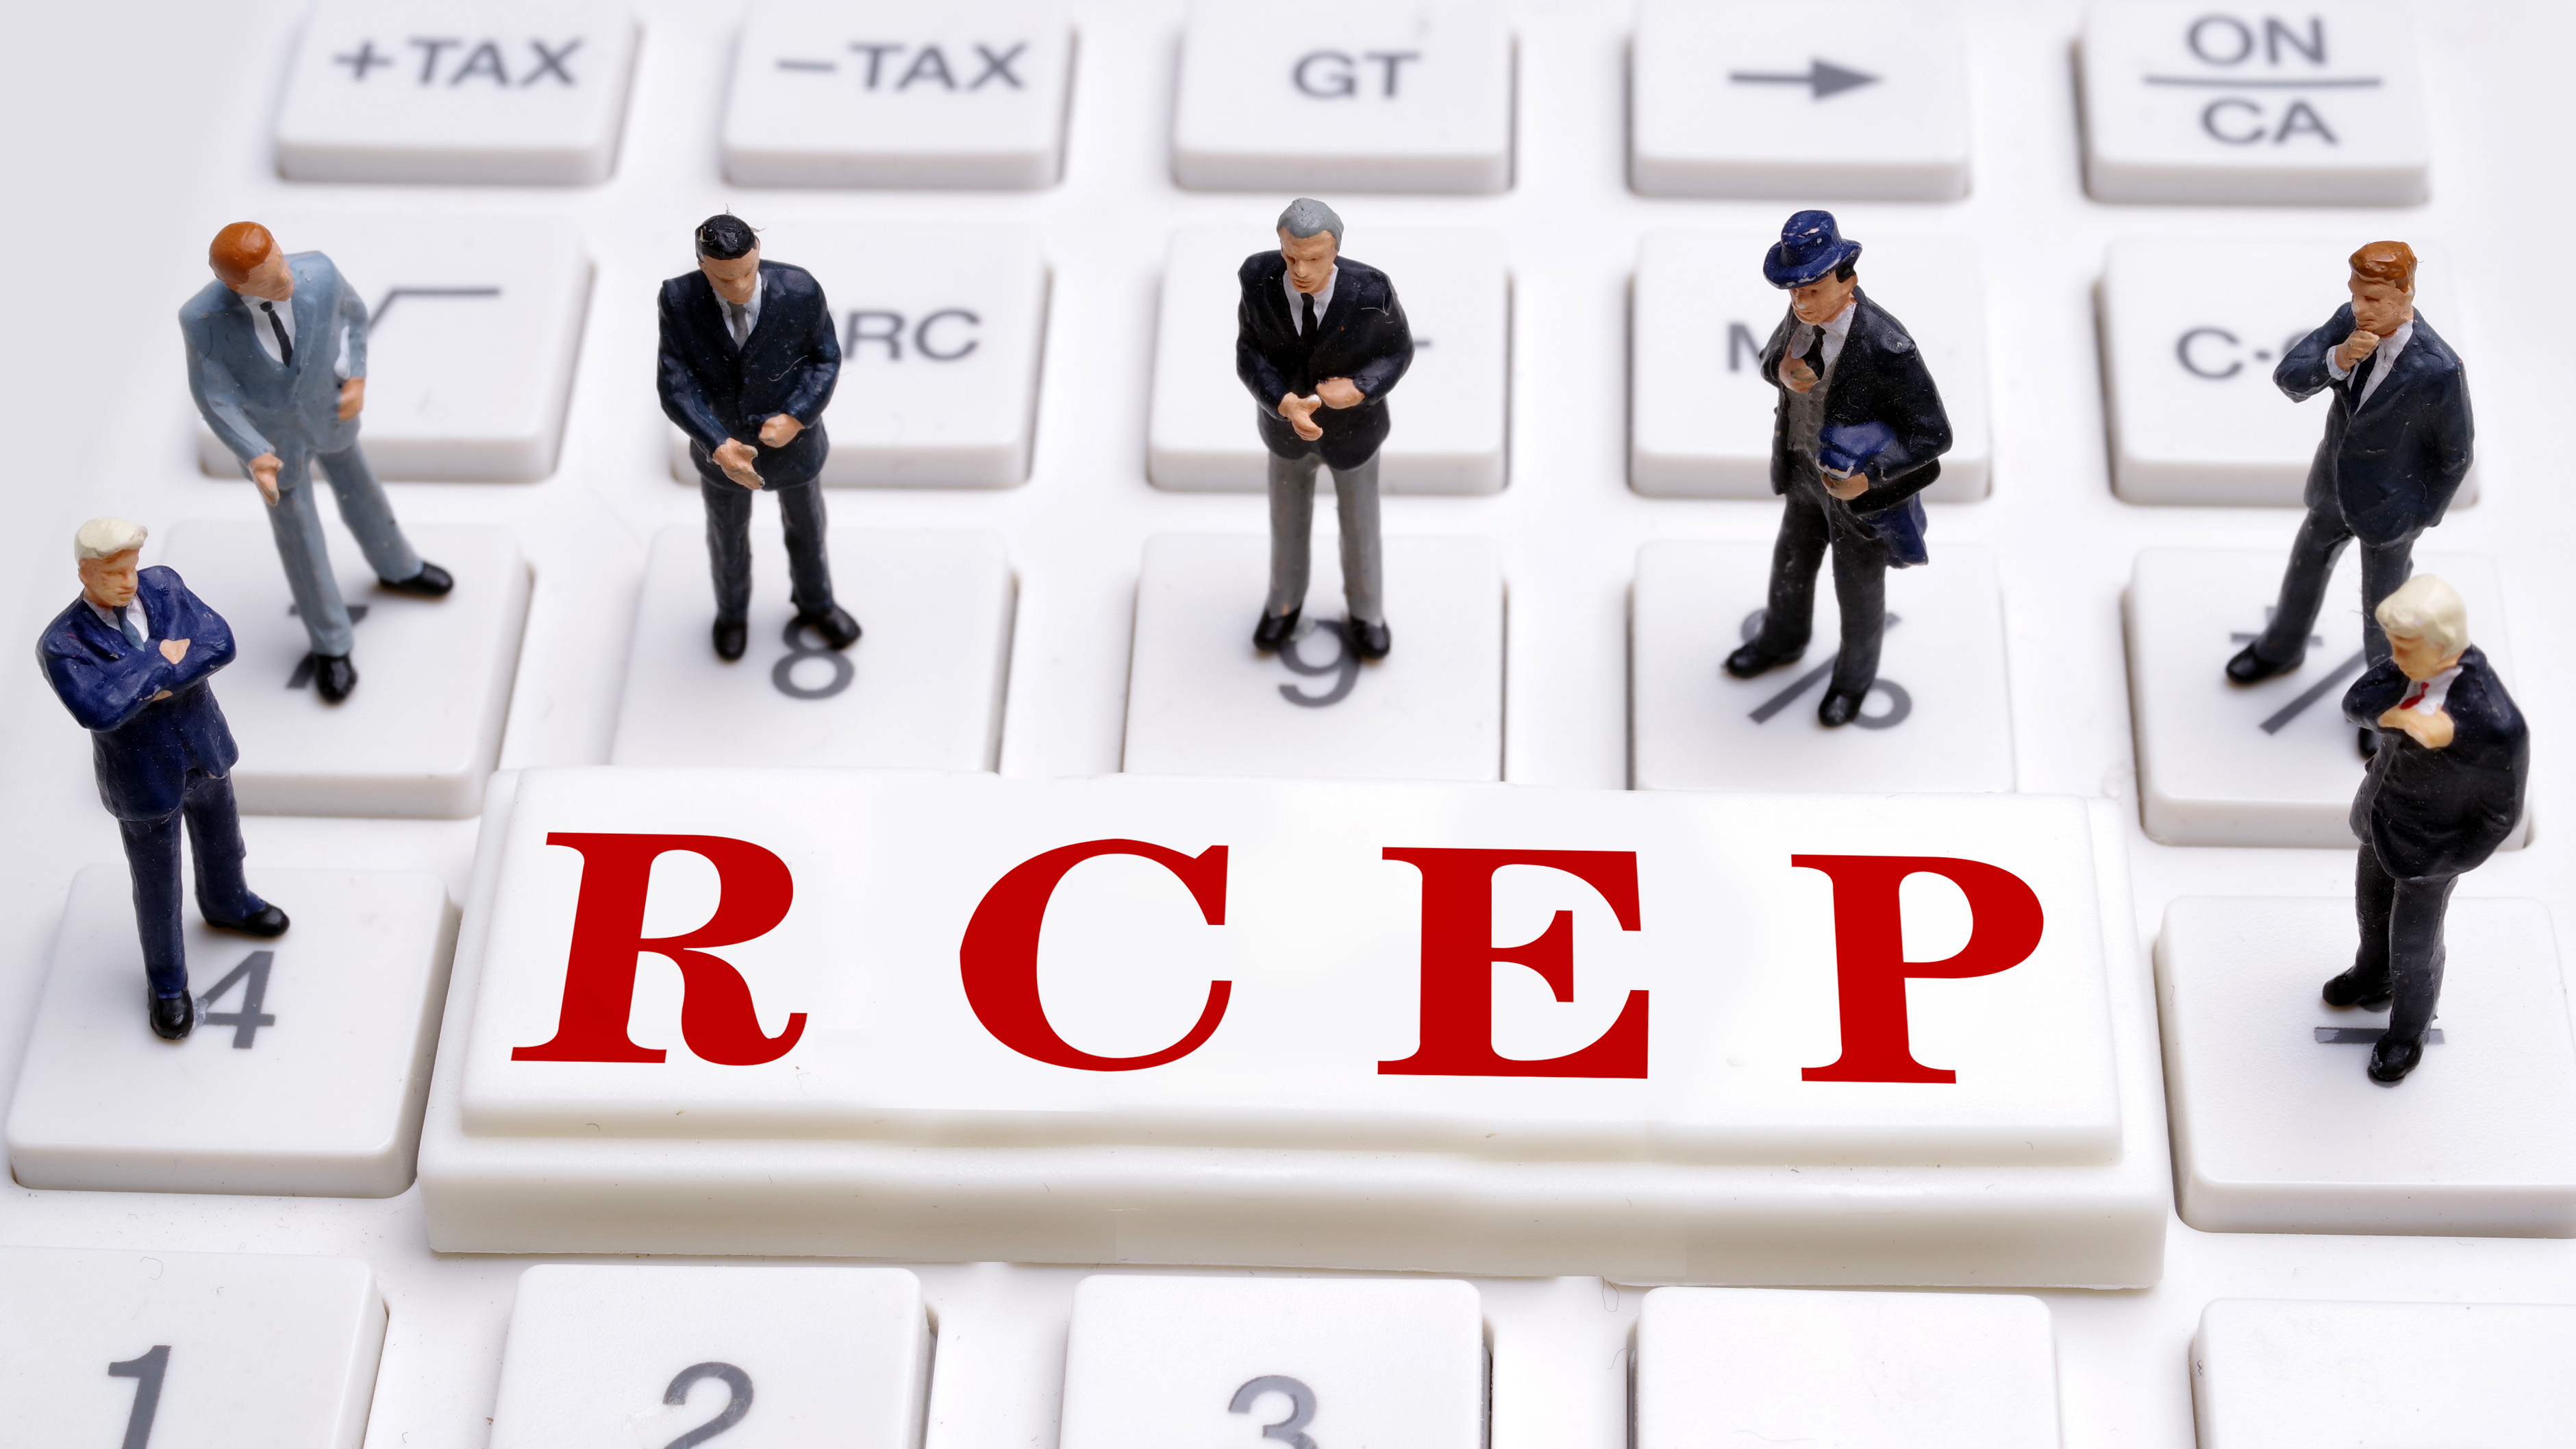 RCEP 'uplifting' amid global recession: Chinese commerce chamber in EU